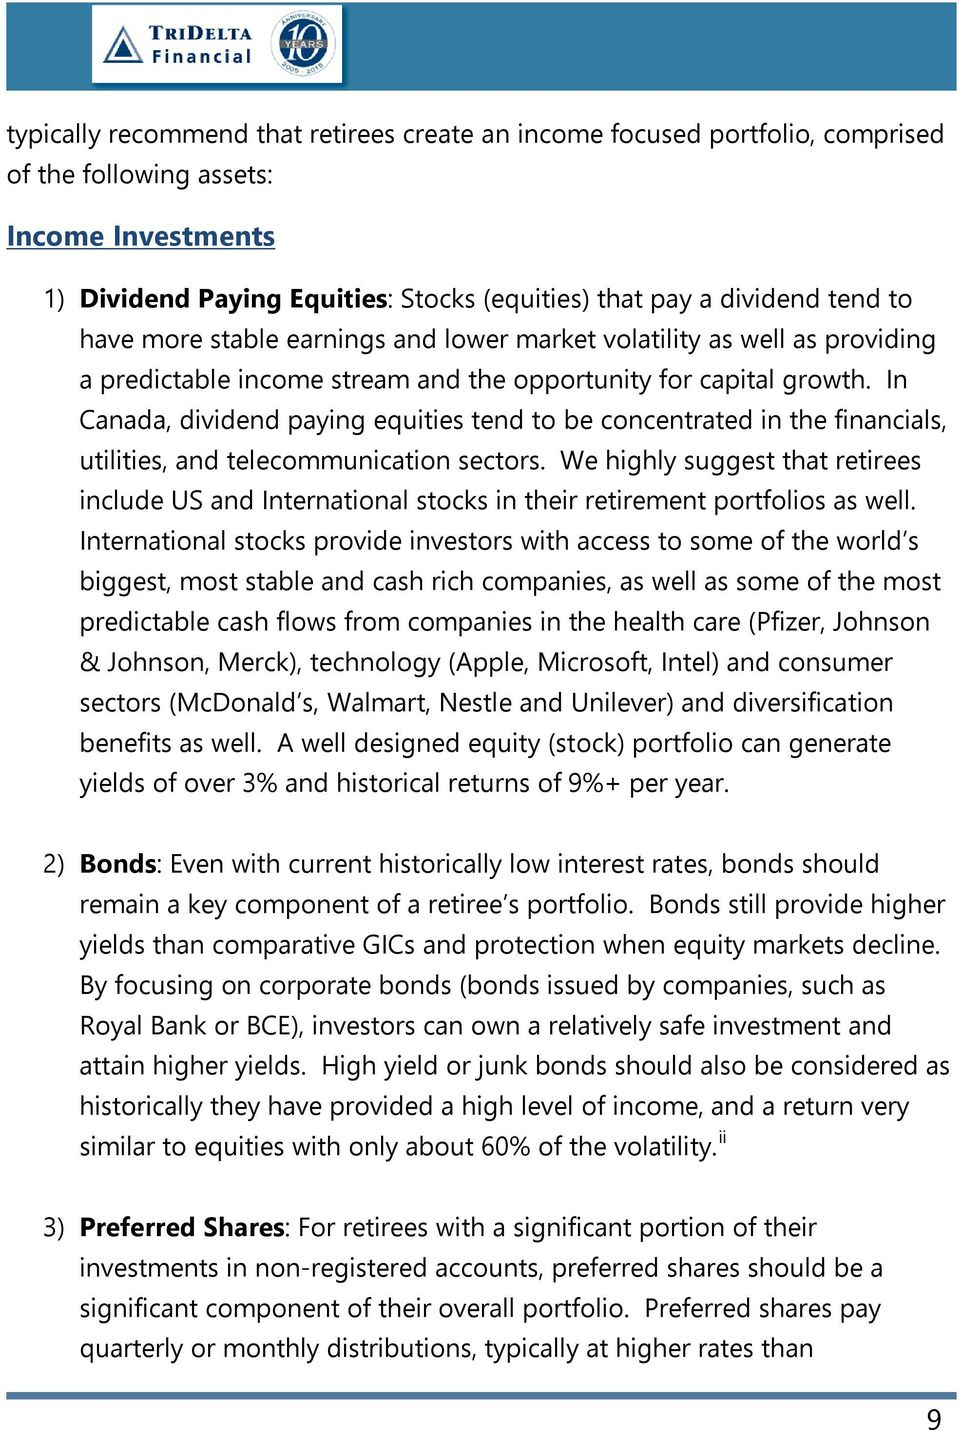 In Canada, dividend paying equities tend to be concentrated in the financials, utilities, and telecommunication sectors.